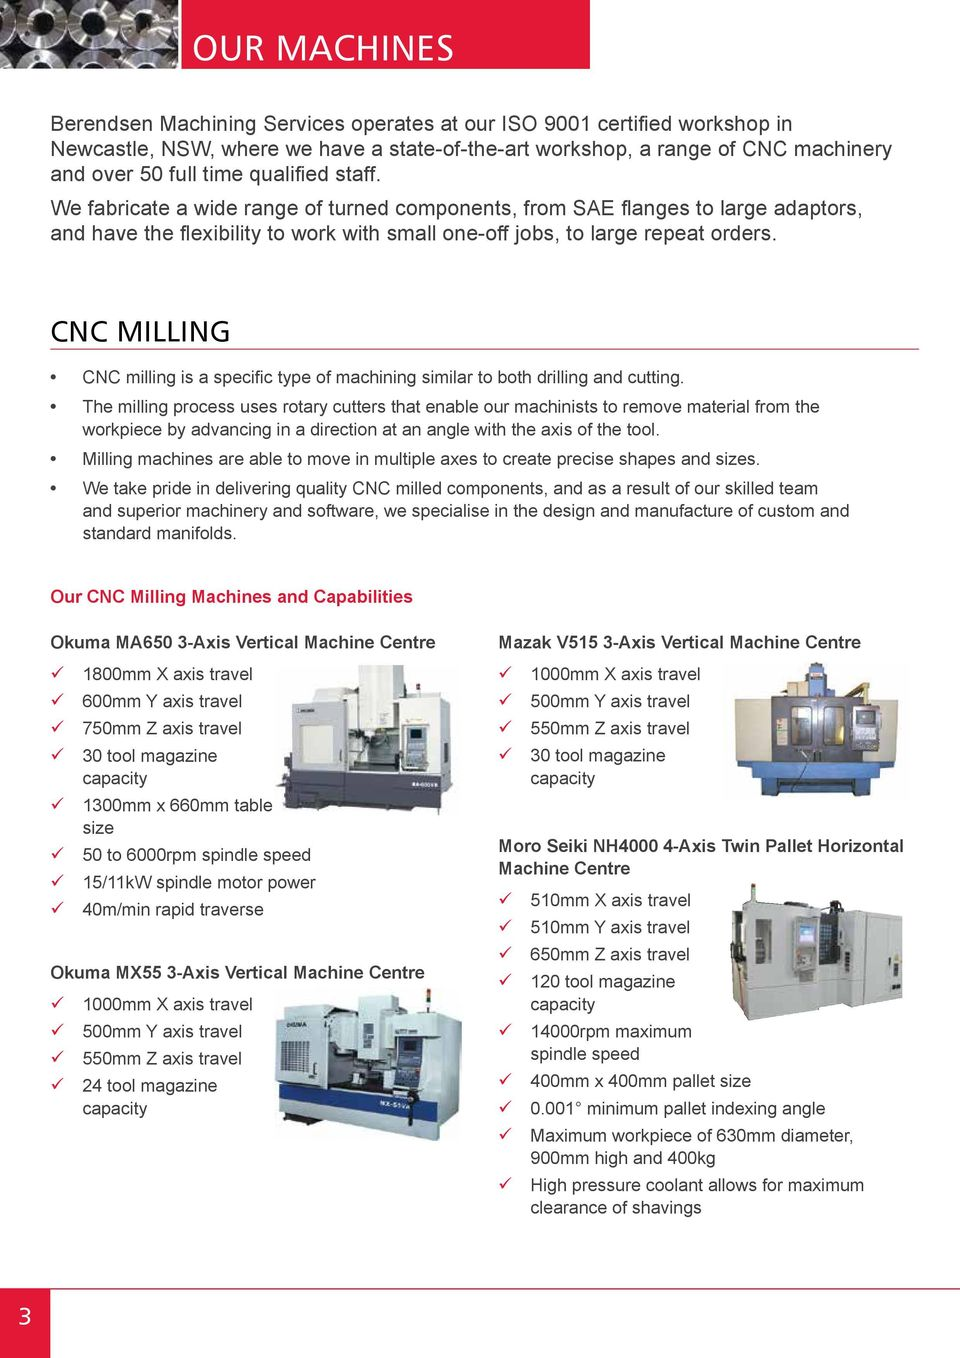 CNC MILLING CNC milling is a specific type of machining similar to both drilling and cutting.